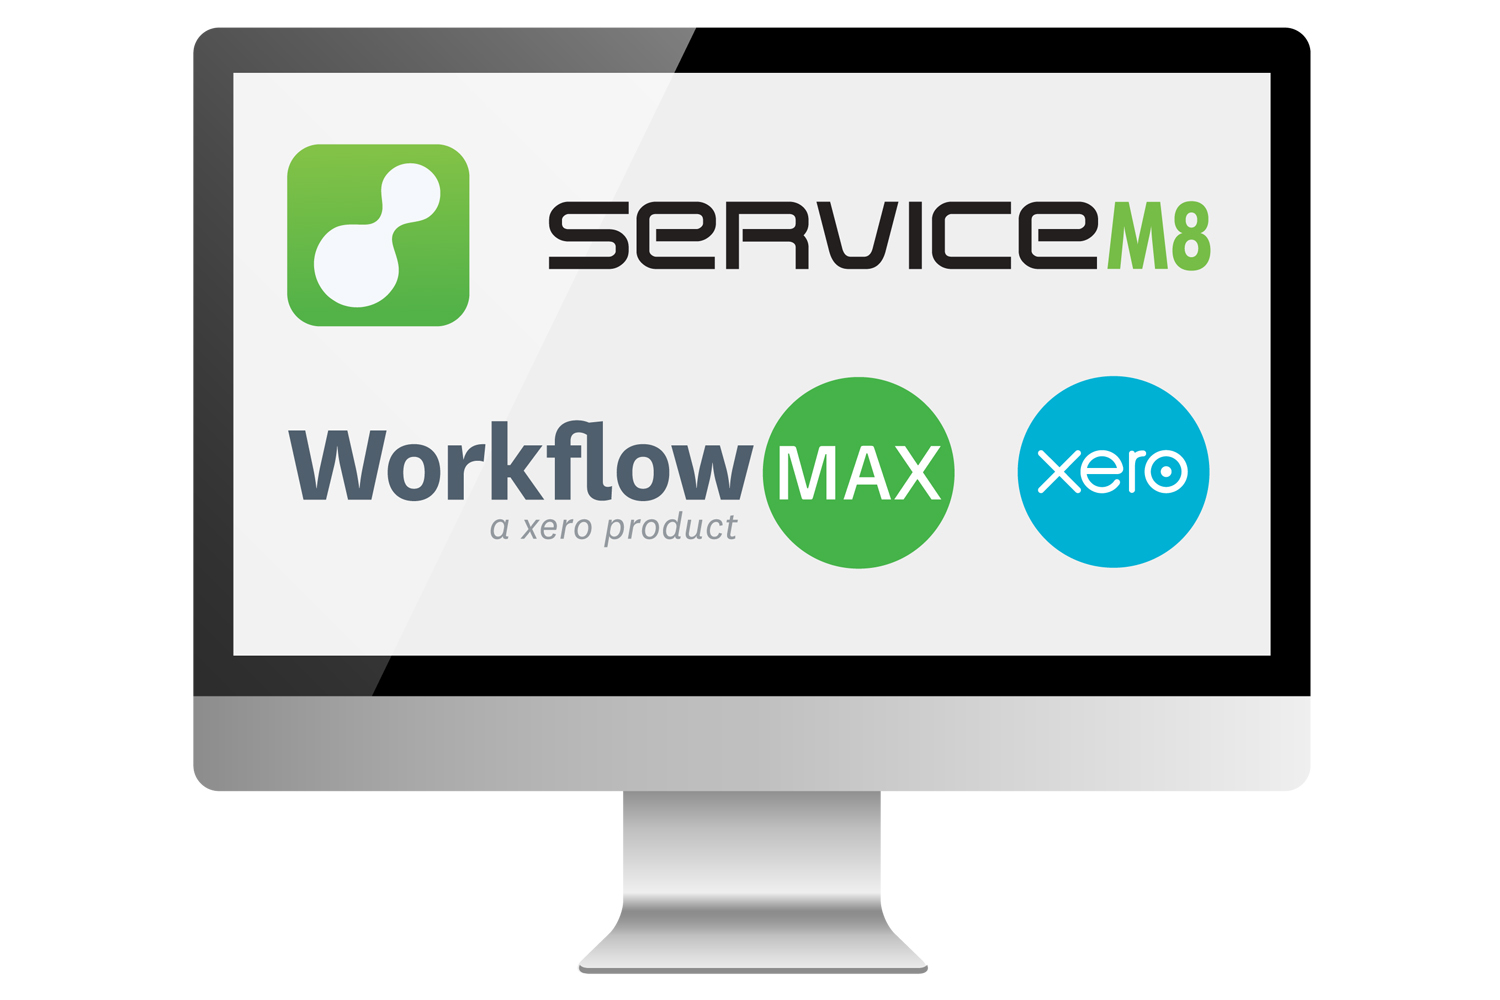 Forms and templates for ServiceM8 WorkflowMAX and Xero